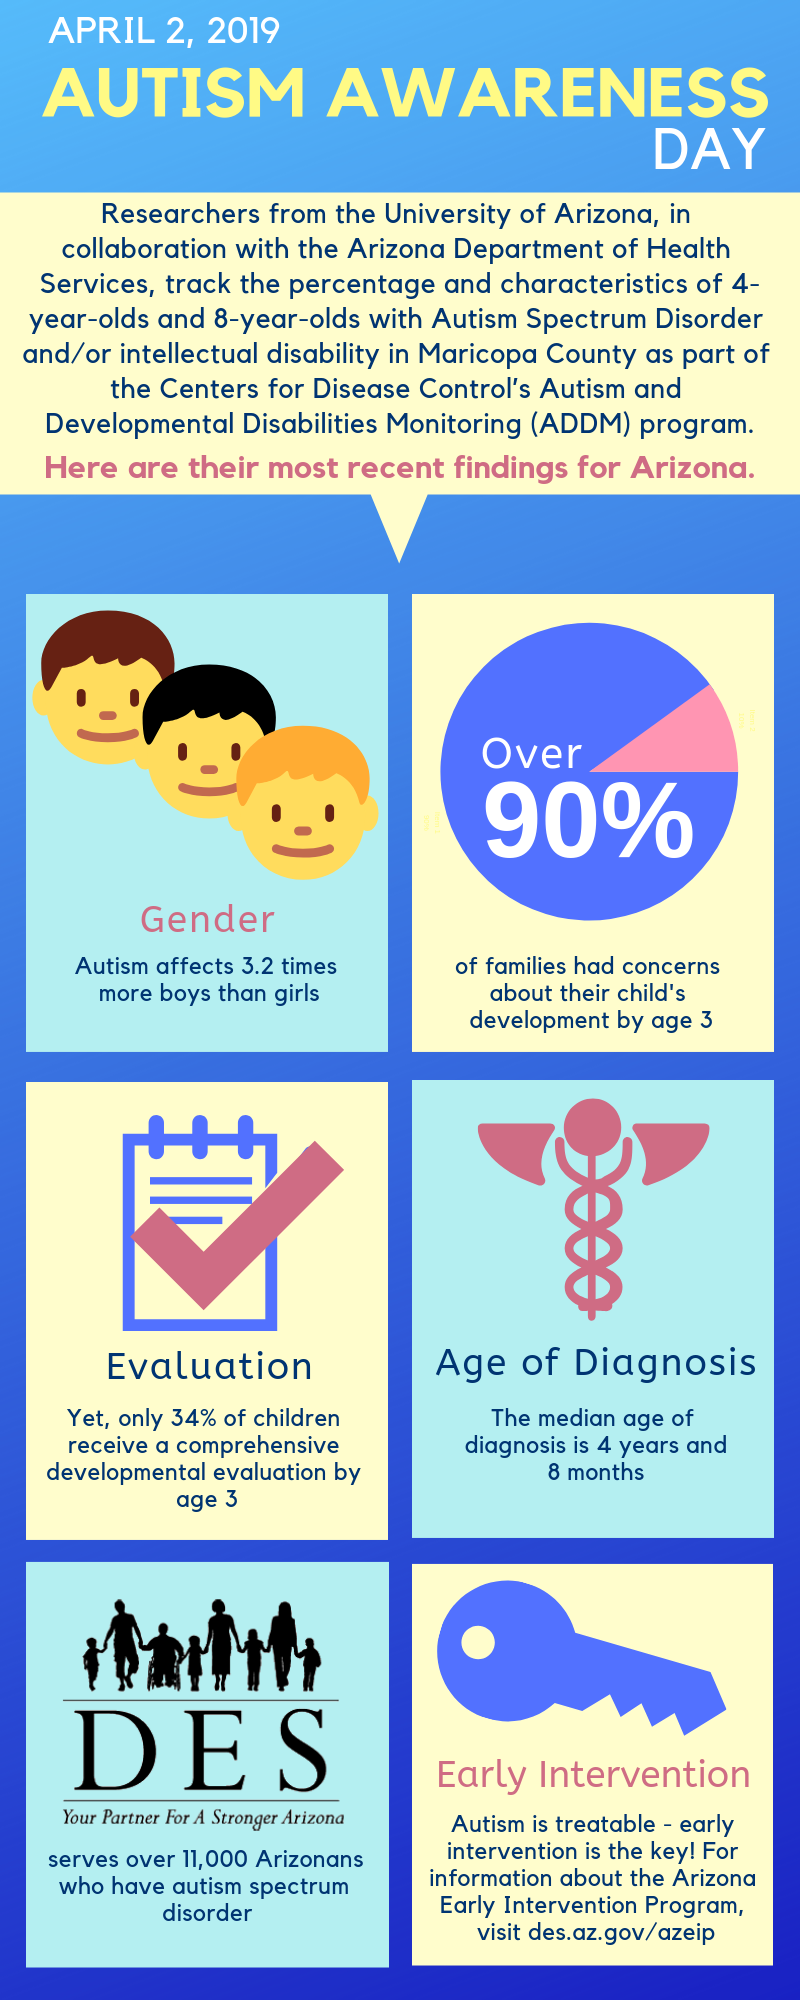 Facts and figures about Autism Awareness